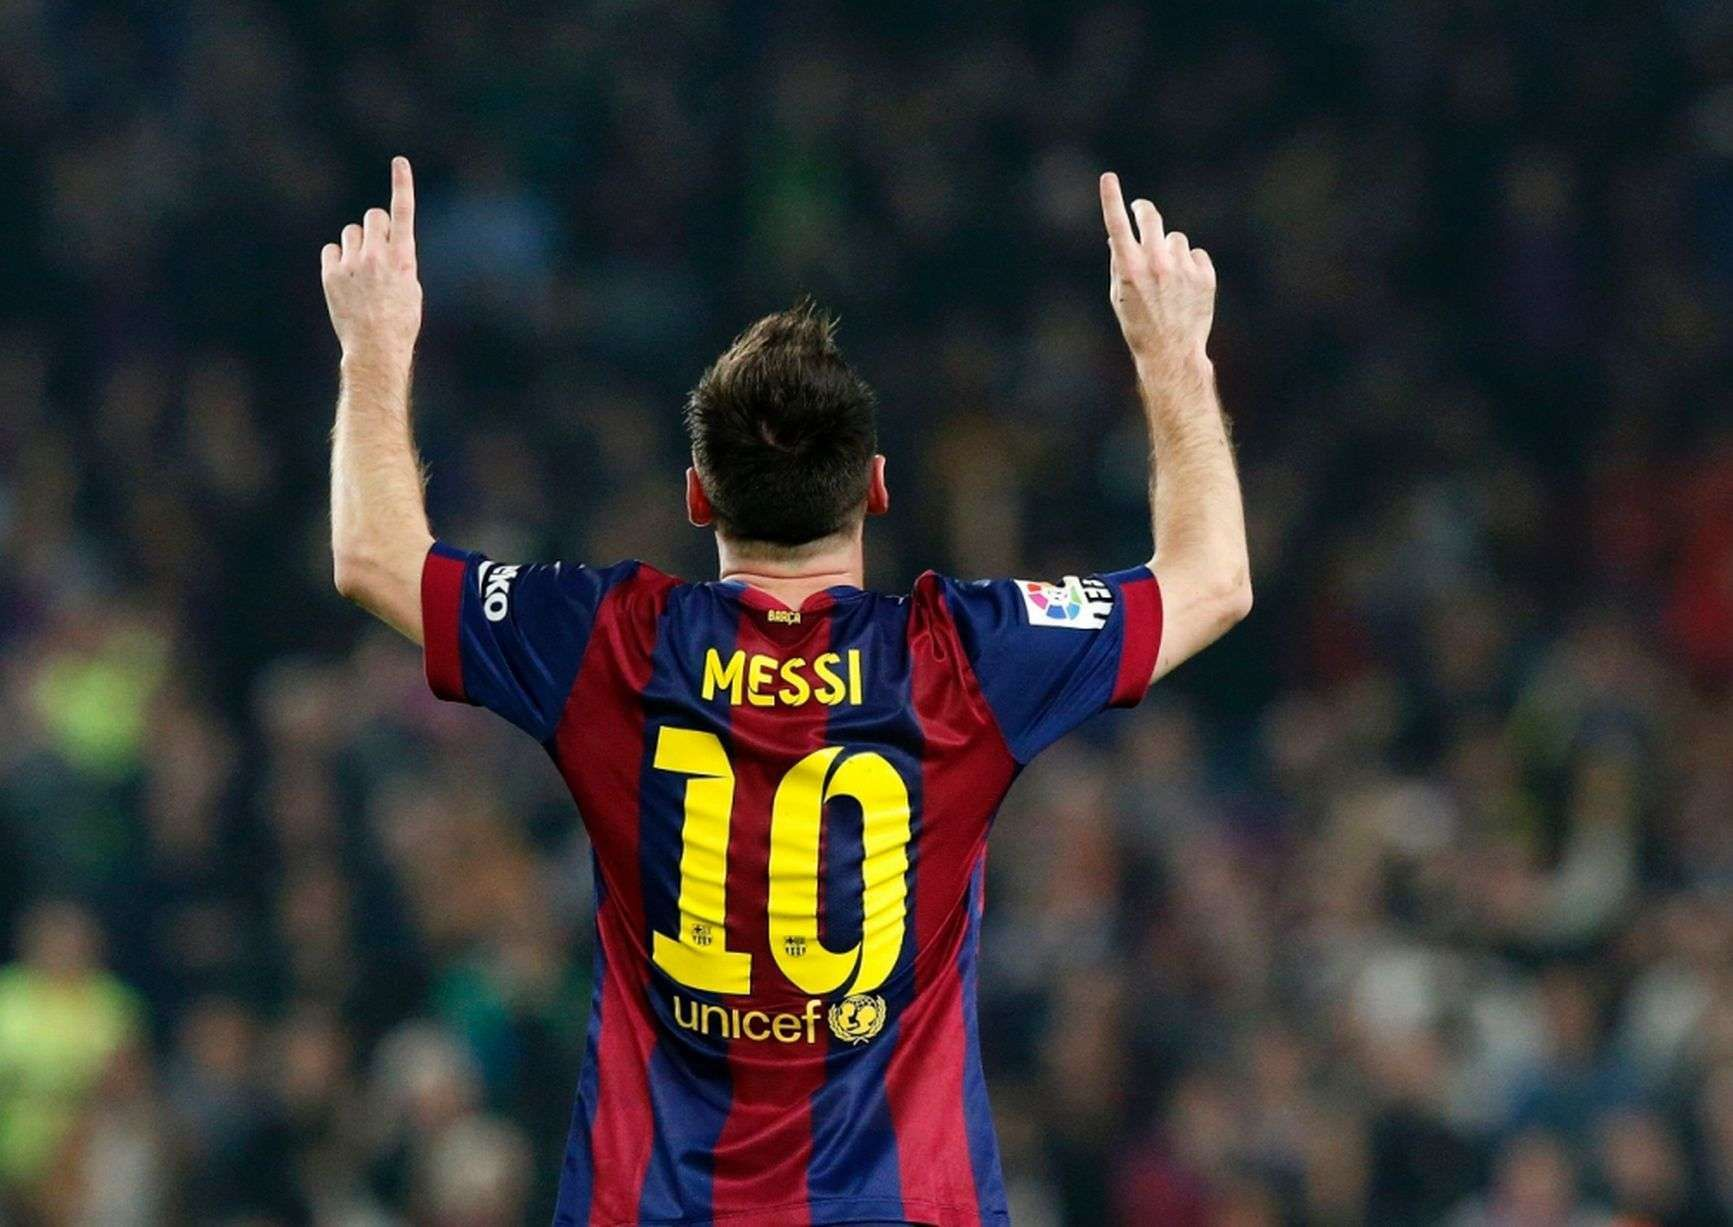 Lionel Messi Iphone HD Wallpaper 1600×1000 Messi Hd